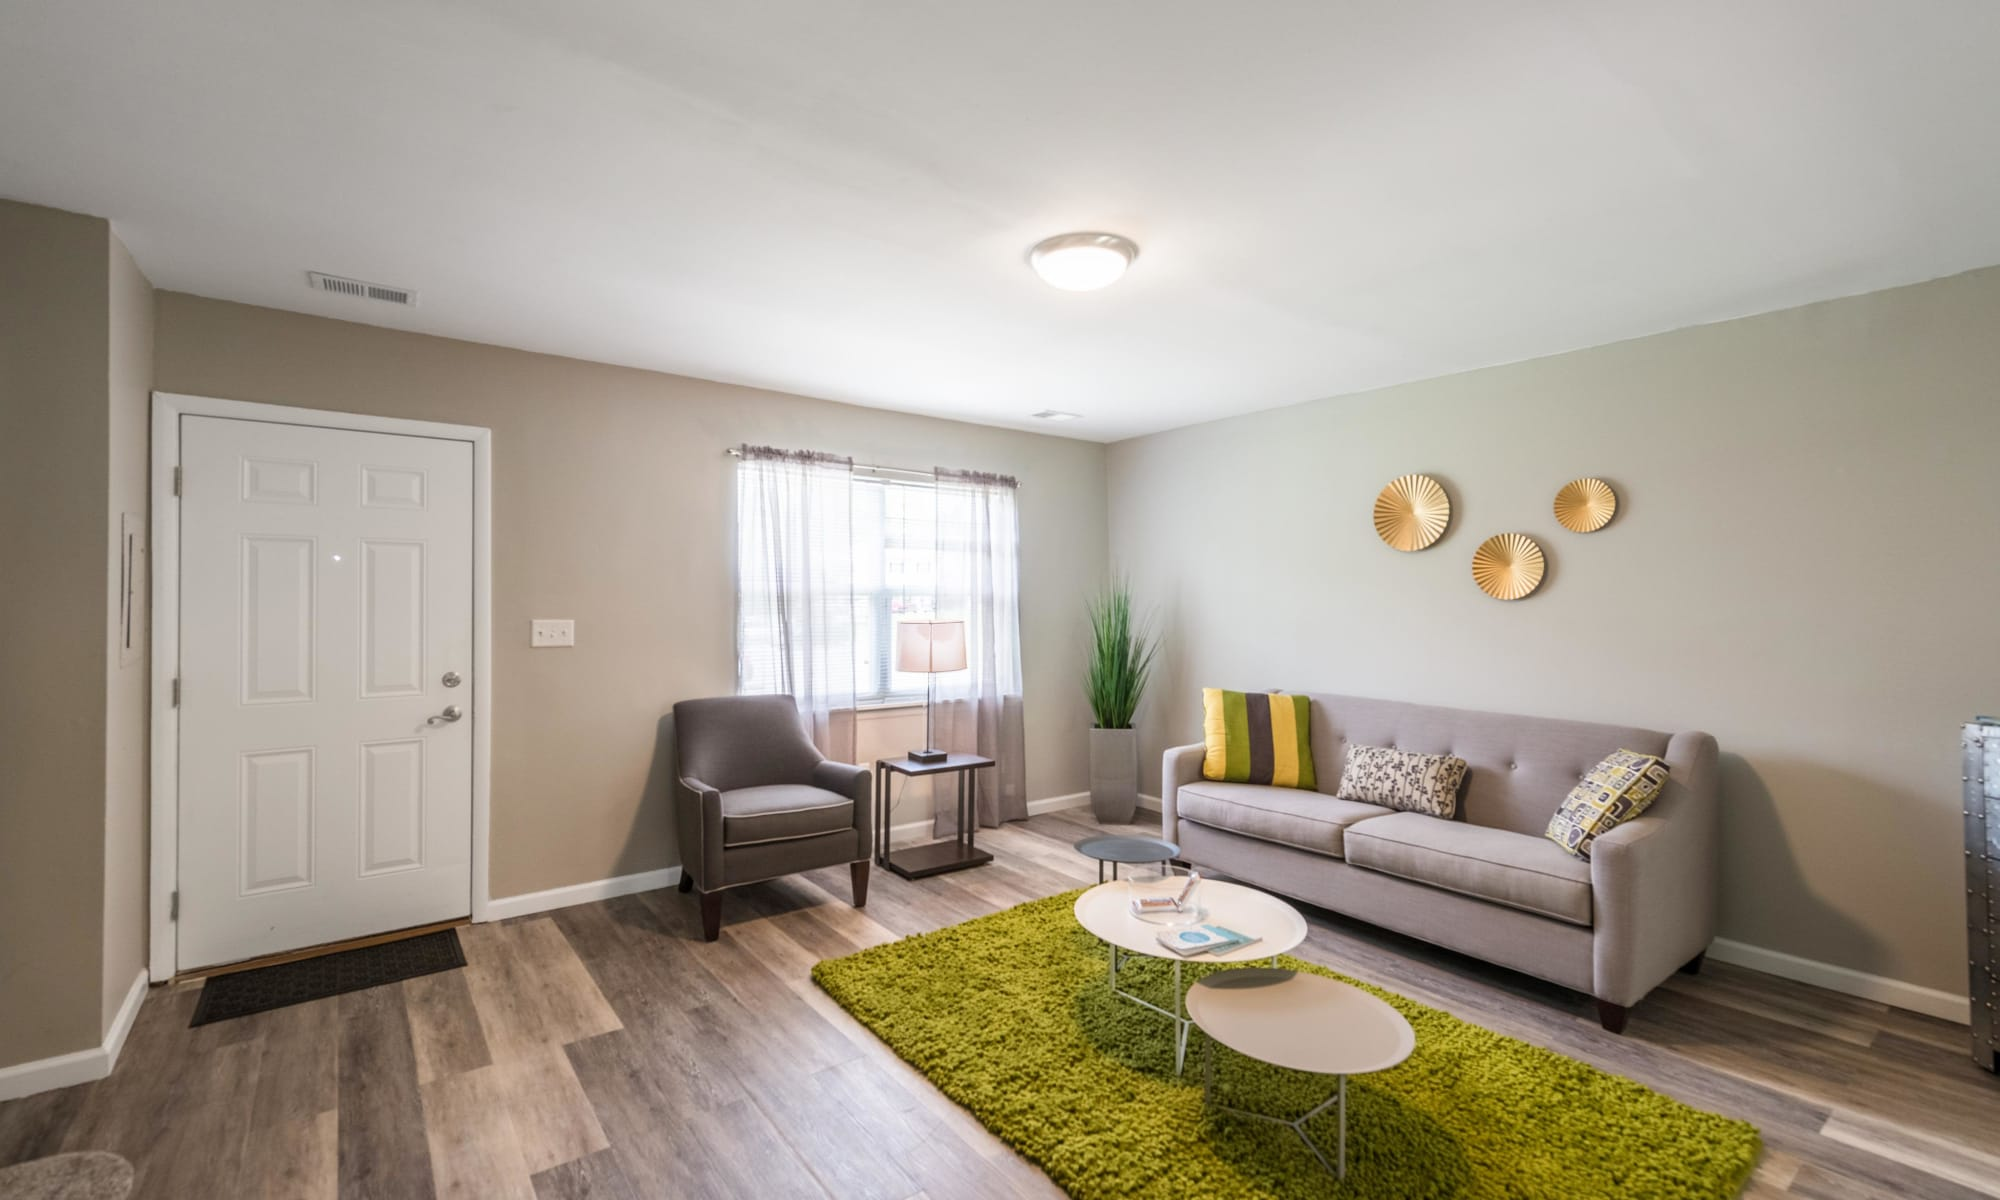 Apartments at The Springs in Parkville, Maryland